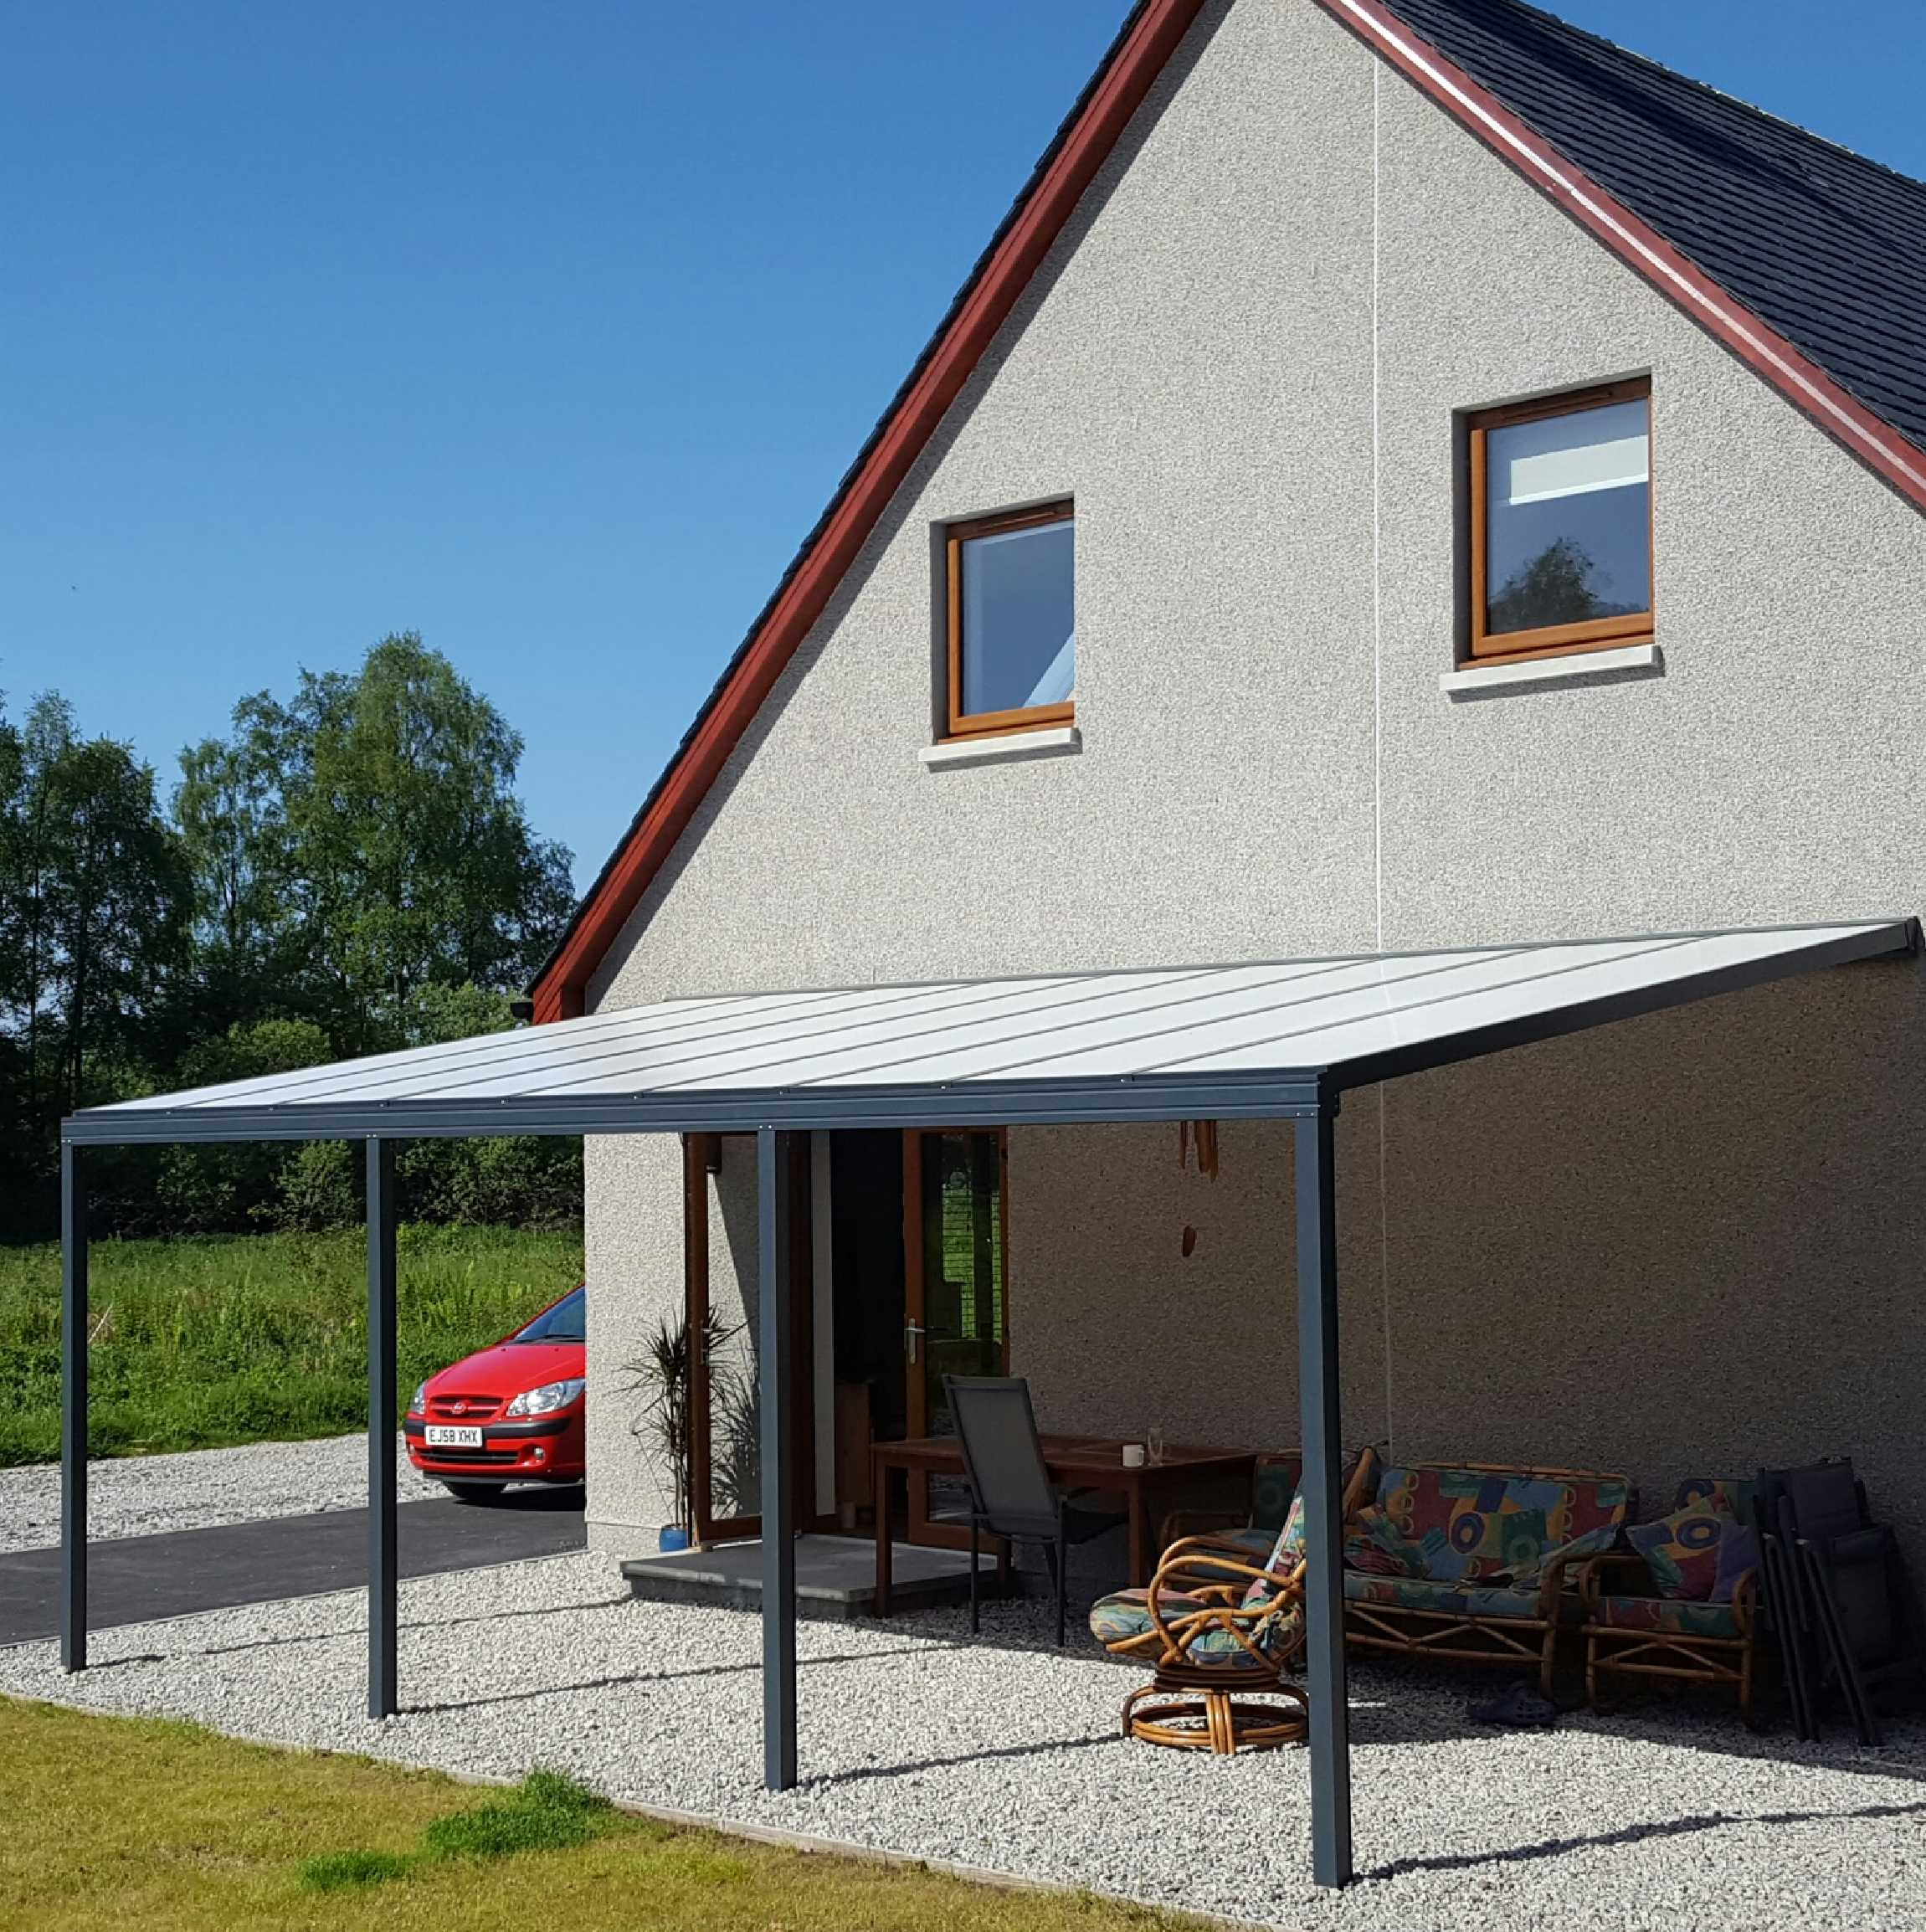 Great selection of Omega Smart Lean-To Canopy, Anthracite Grey, 16mm Polycarbonate Glazing - 9.2m (W) x 3.5m (P), (5) Supporting Posts